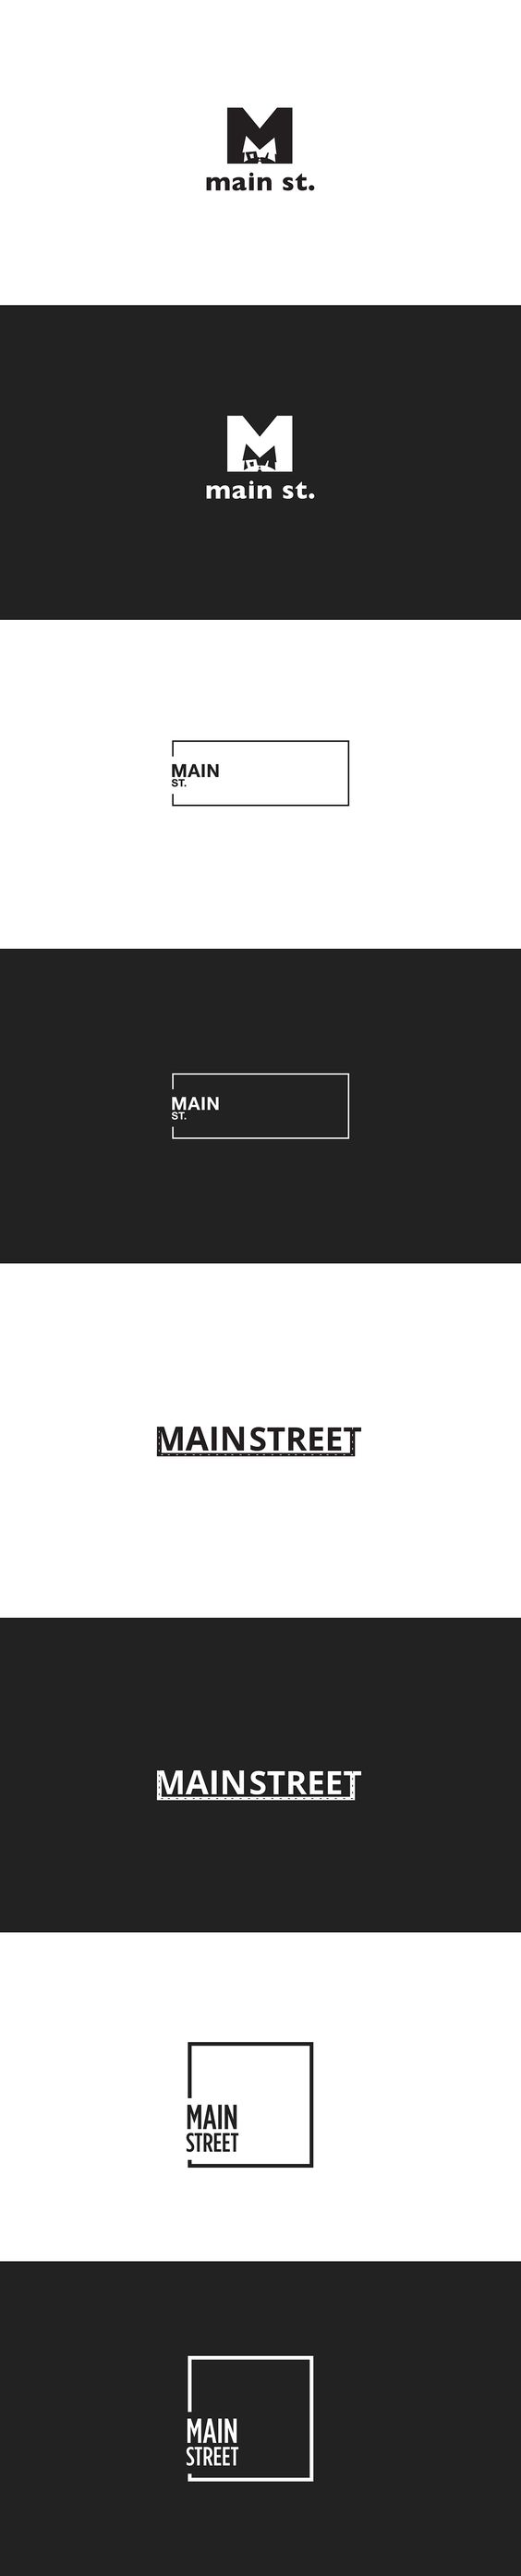 Concepts for Main Street Themes logo